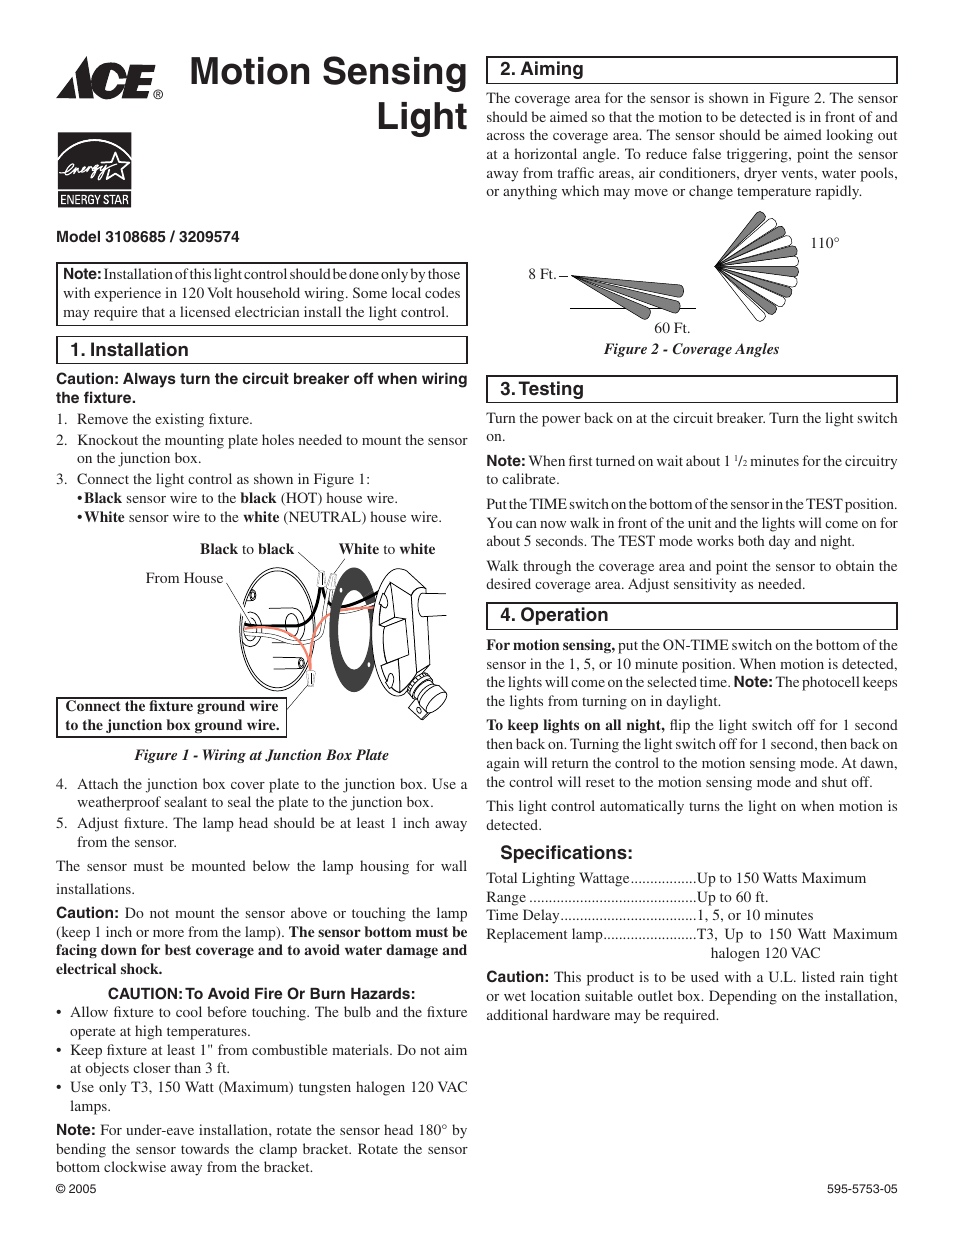 Ace Hardware 3108685 User Manual 2 Pages Also For 3209574 Wiring Photosensorphotocellpng